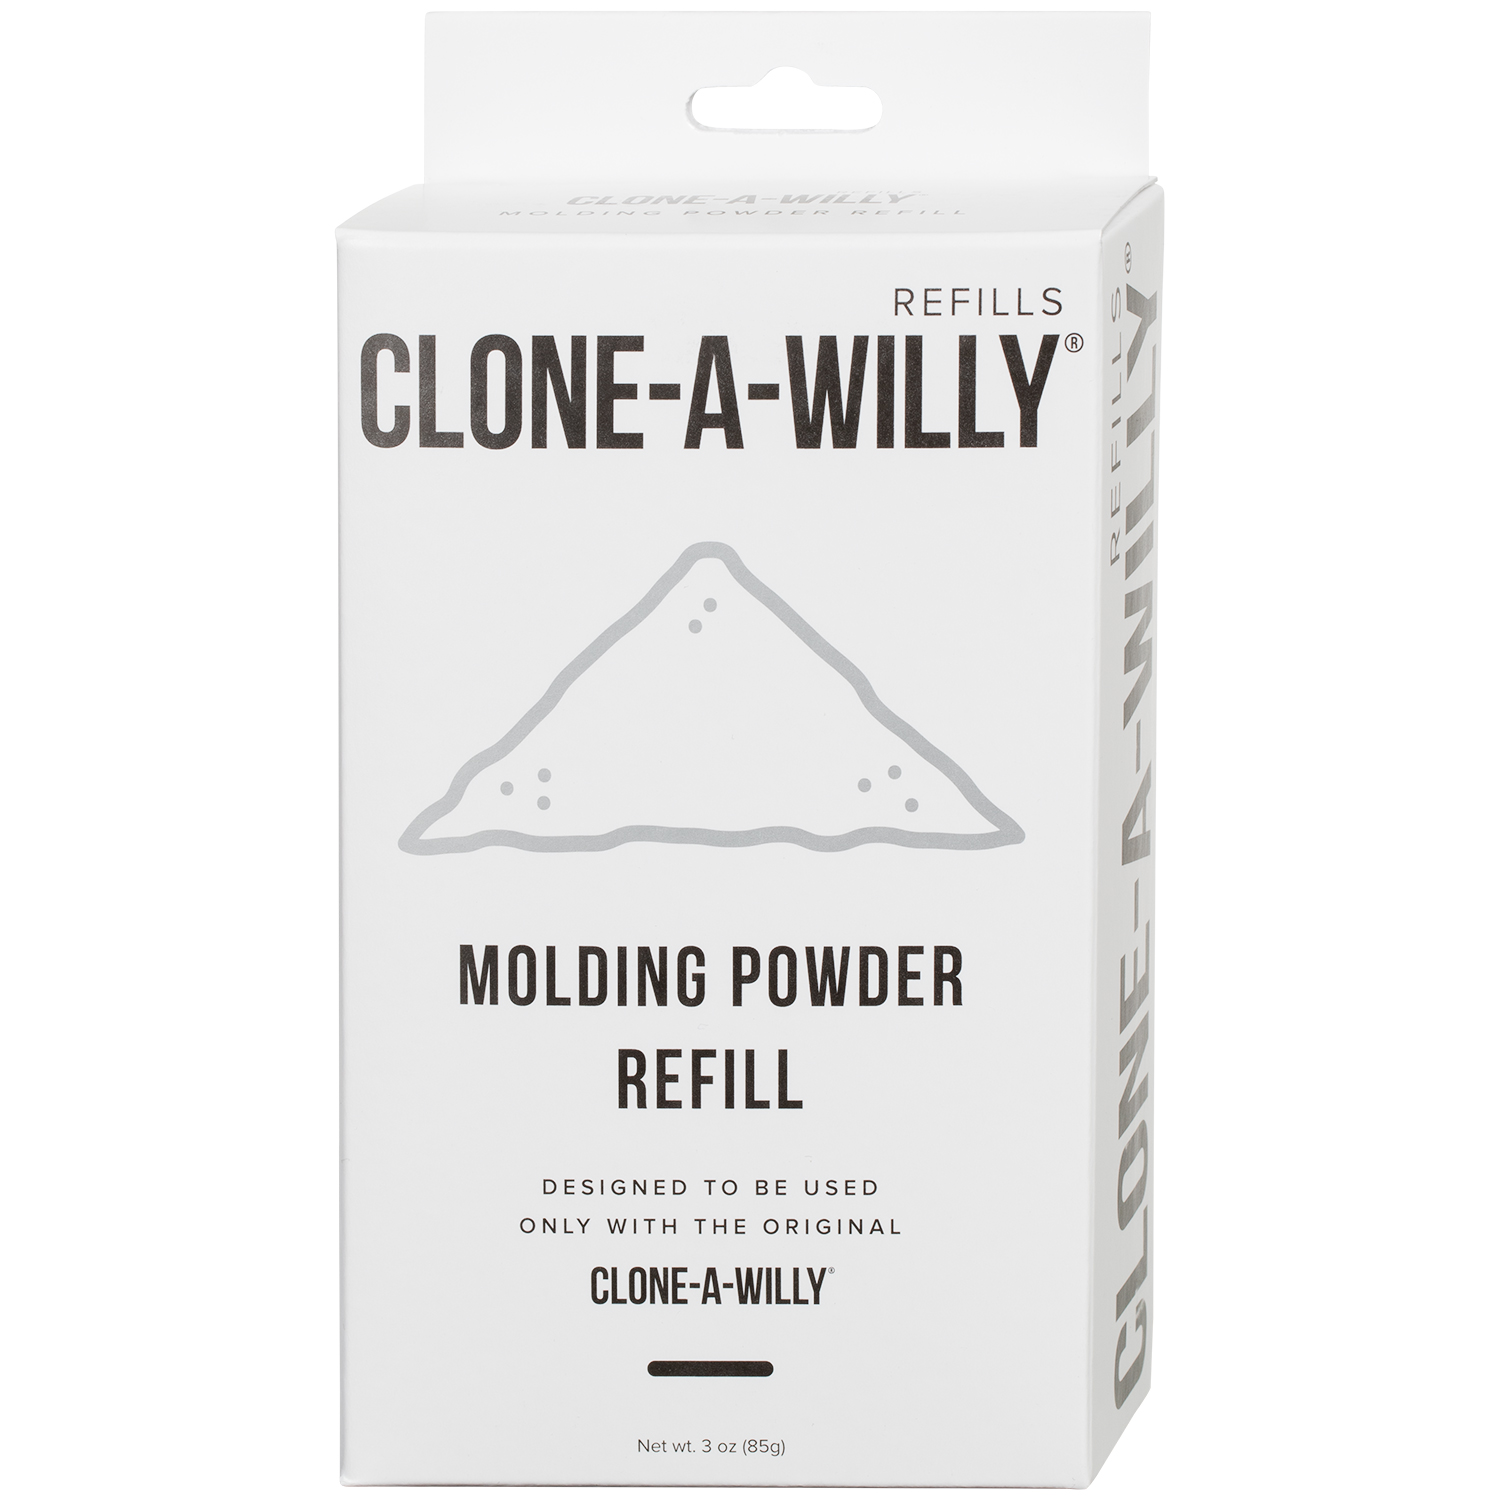 Clone-A-Willy Refill Støbnings Pulver thumbnail